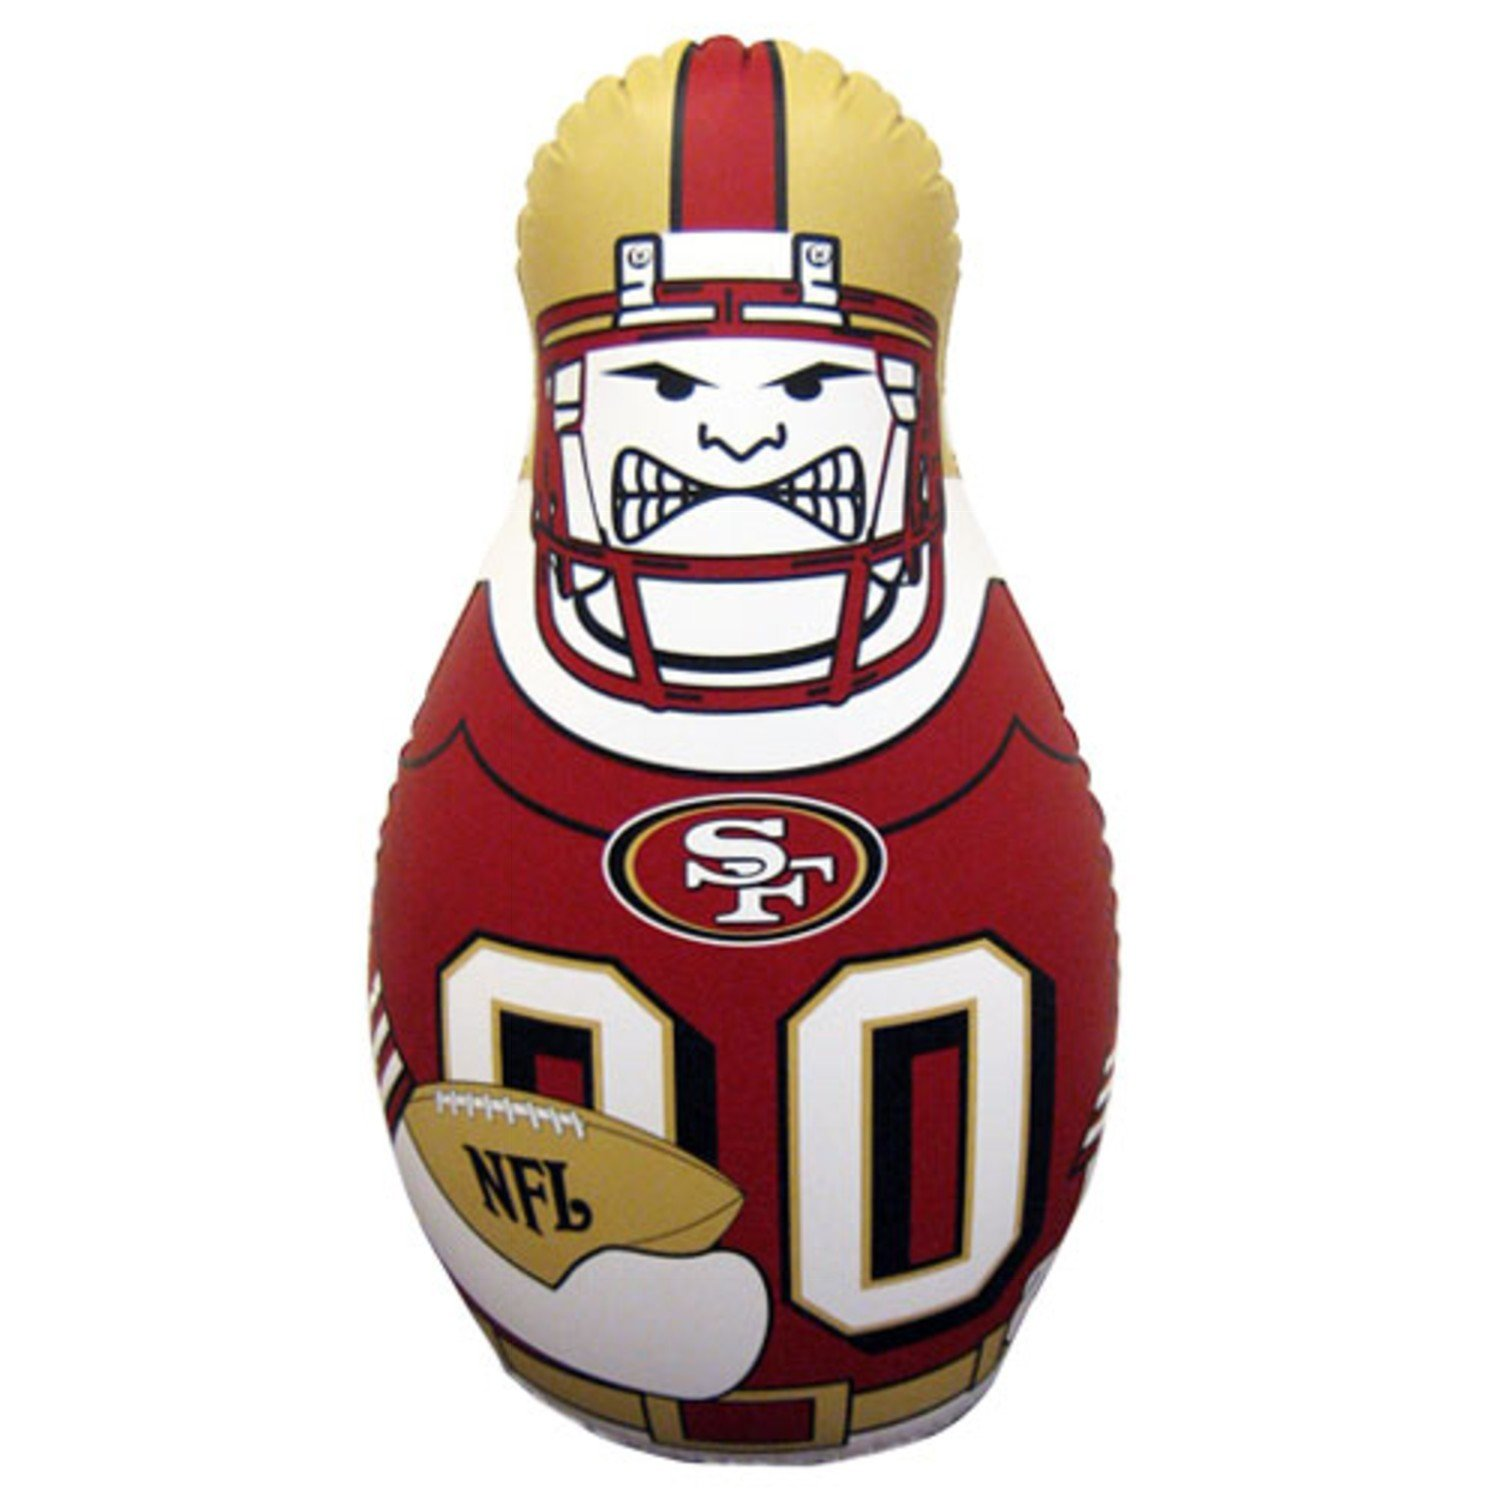 NFL Tackle San Francisco 49ers NFL Tackle Buddy 49ers B00GNTXJE6, 65%OFF【送料無料】:92333598 --- capela.dominiotemporario.com